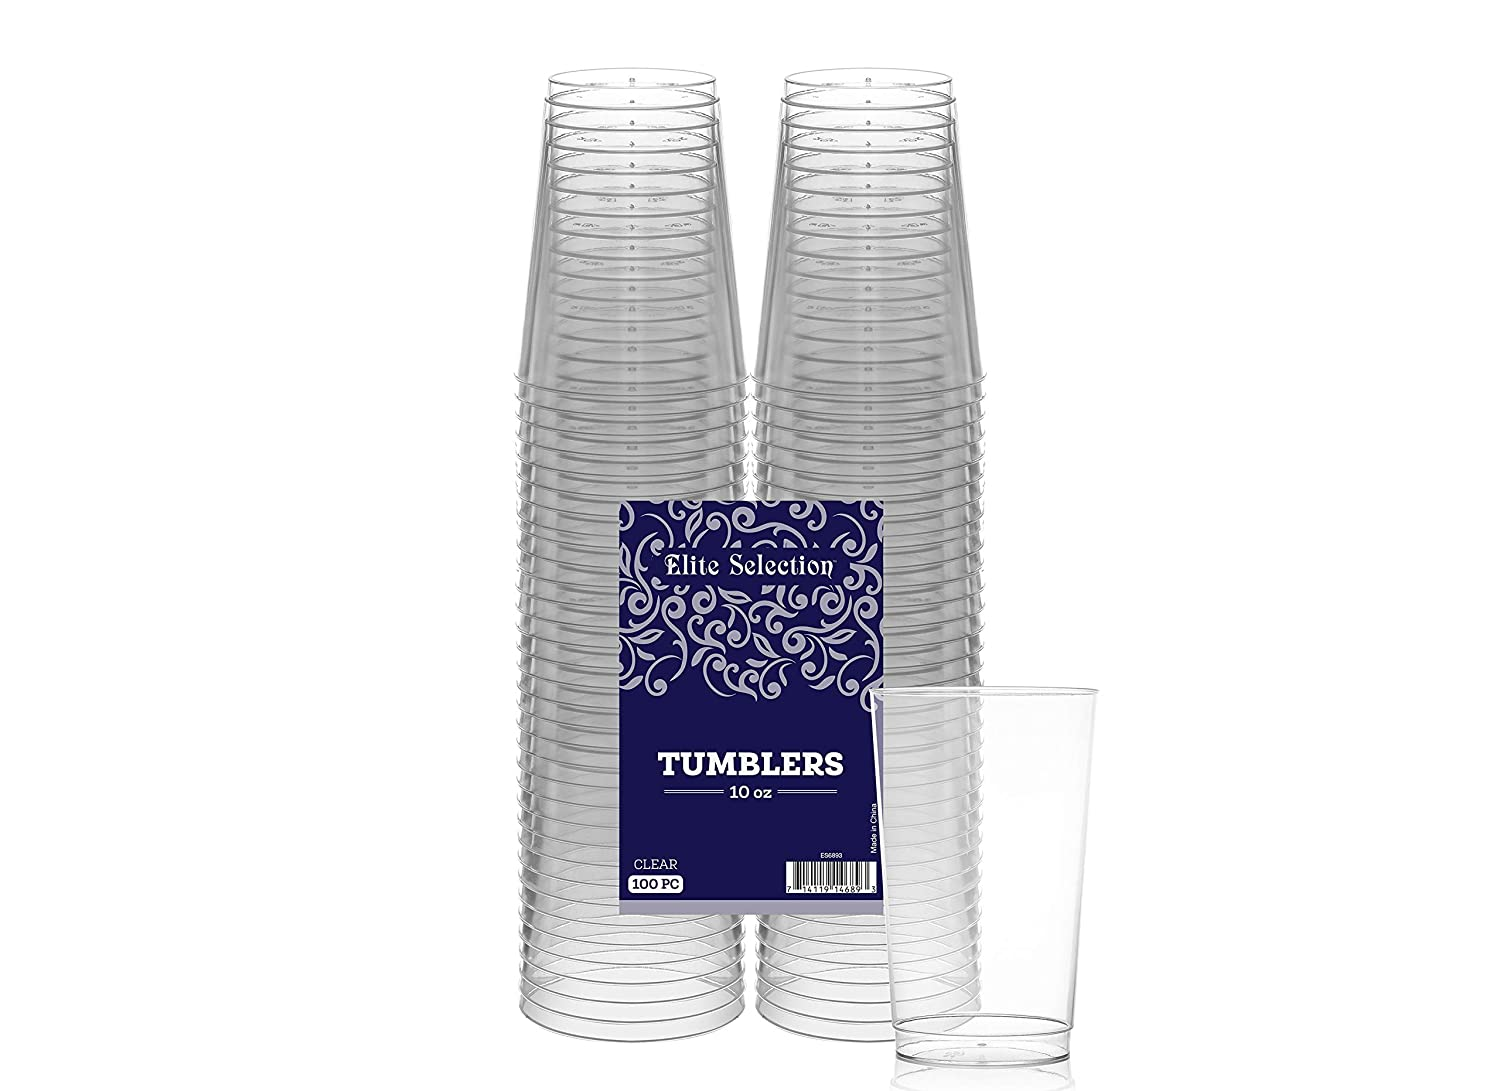 Clear Disposable Plastic Cups 10 Oz. Pack Of (100) Fancy Hard Plastic Cups - Party Accessories - Wedding - Elegant Clear Cups- Tumblers